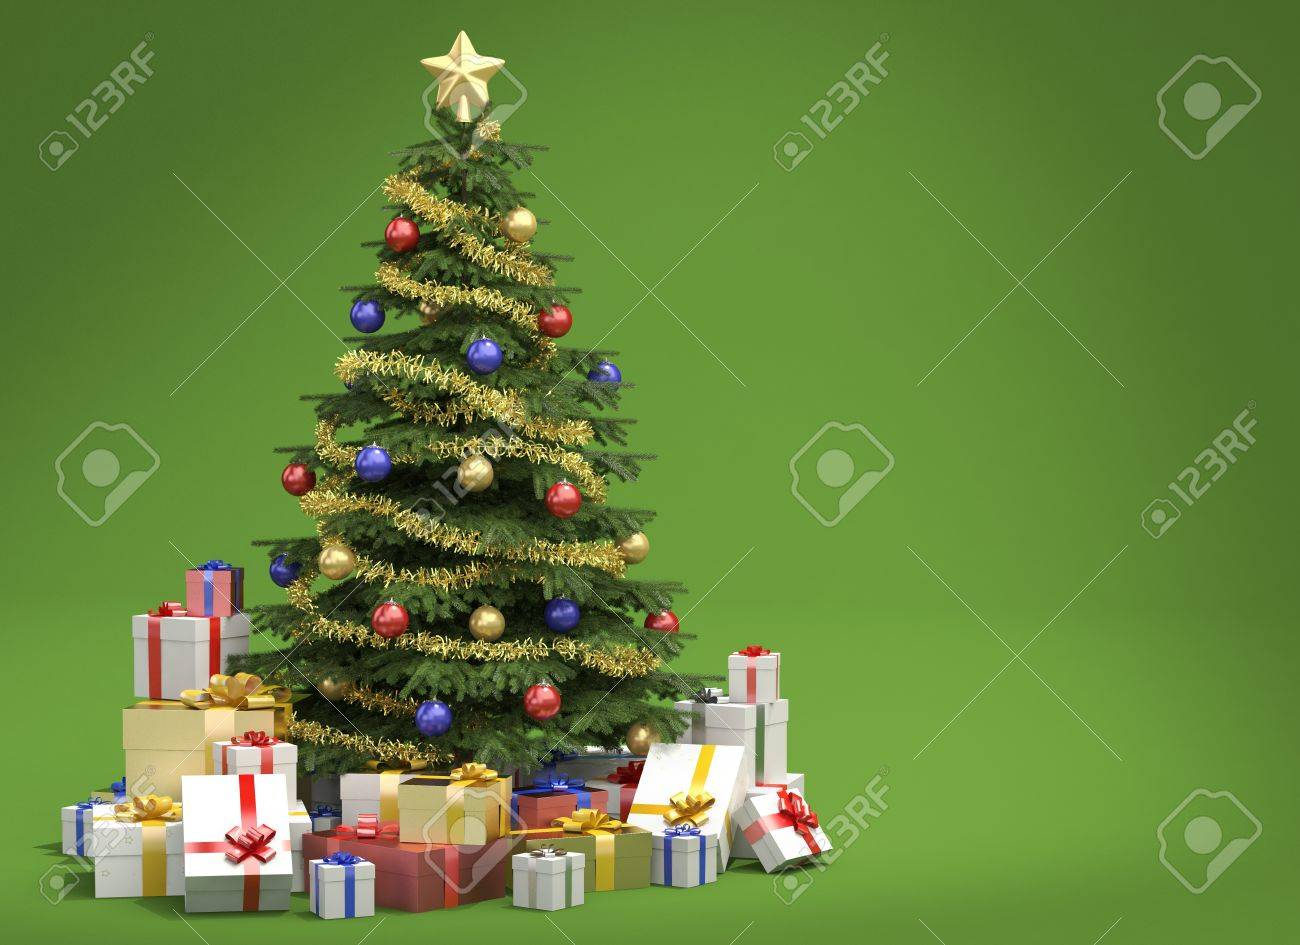 fully decorated christmas tree with many presents isolated on green background with copy space on the